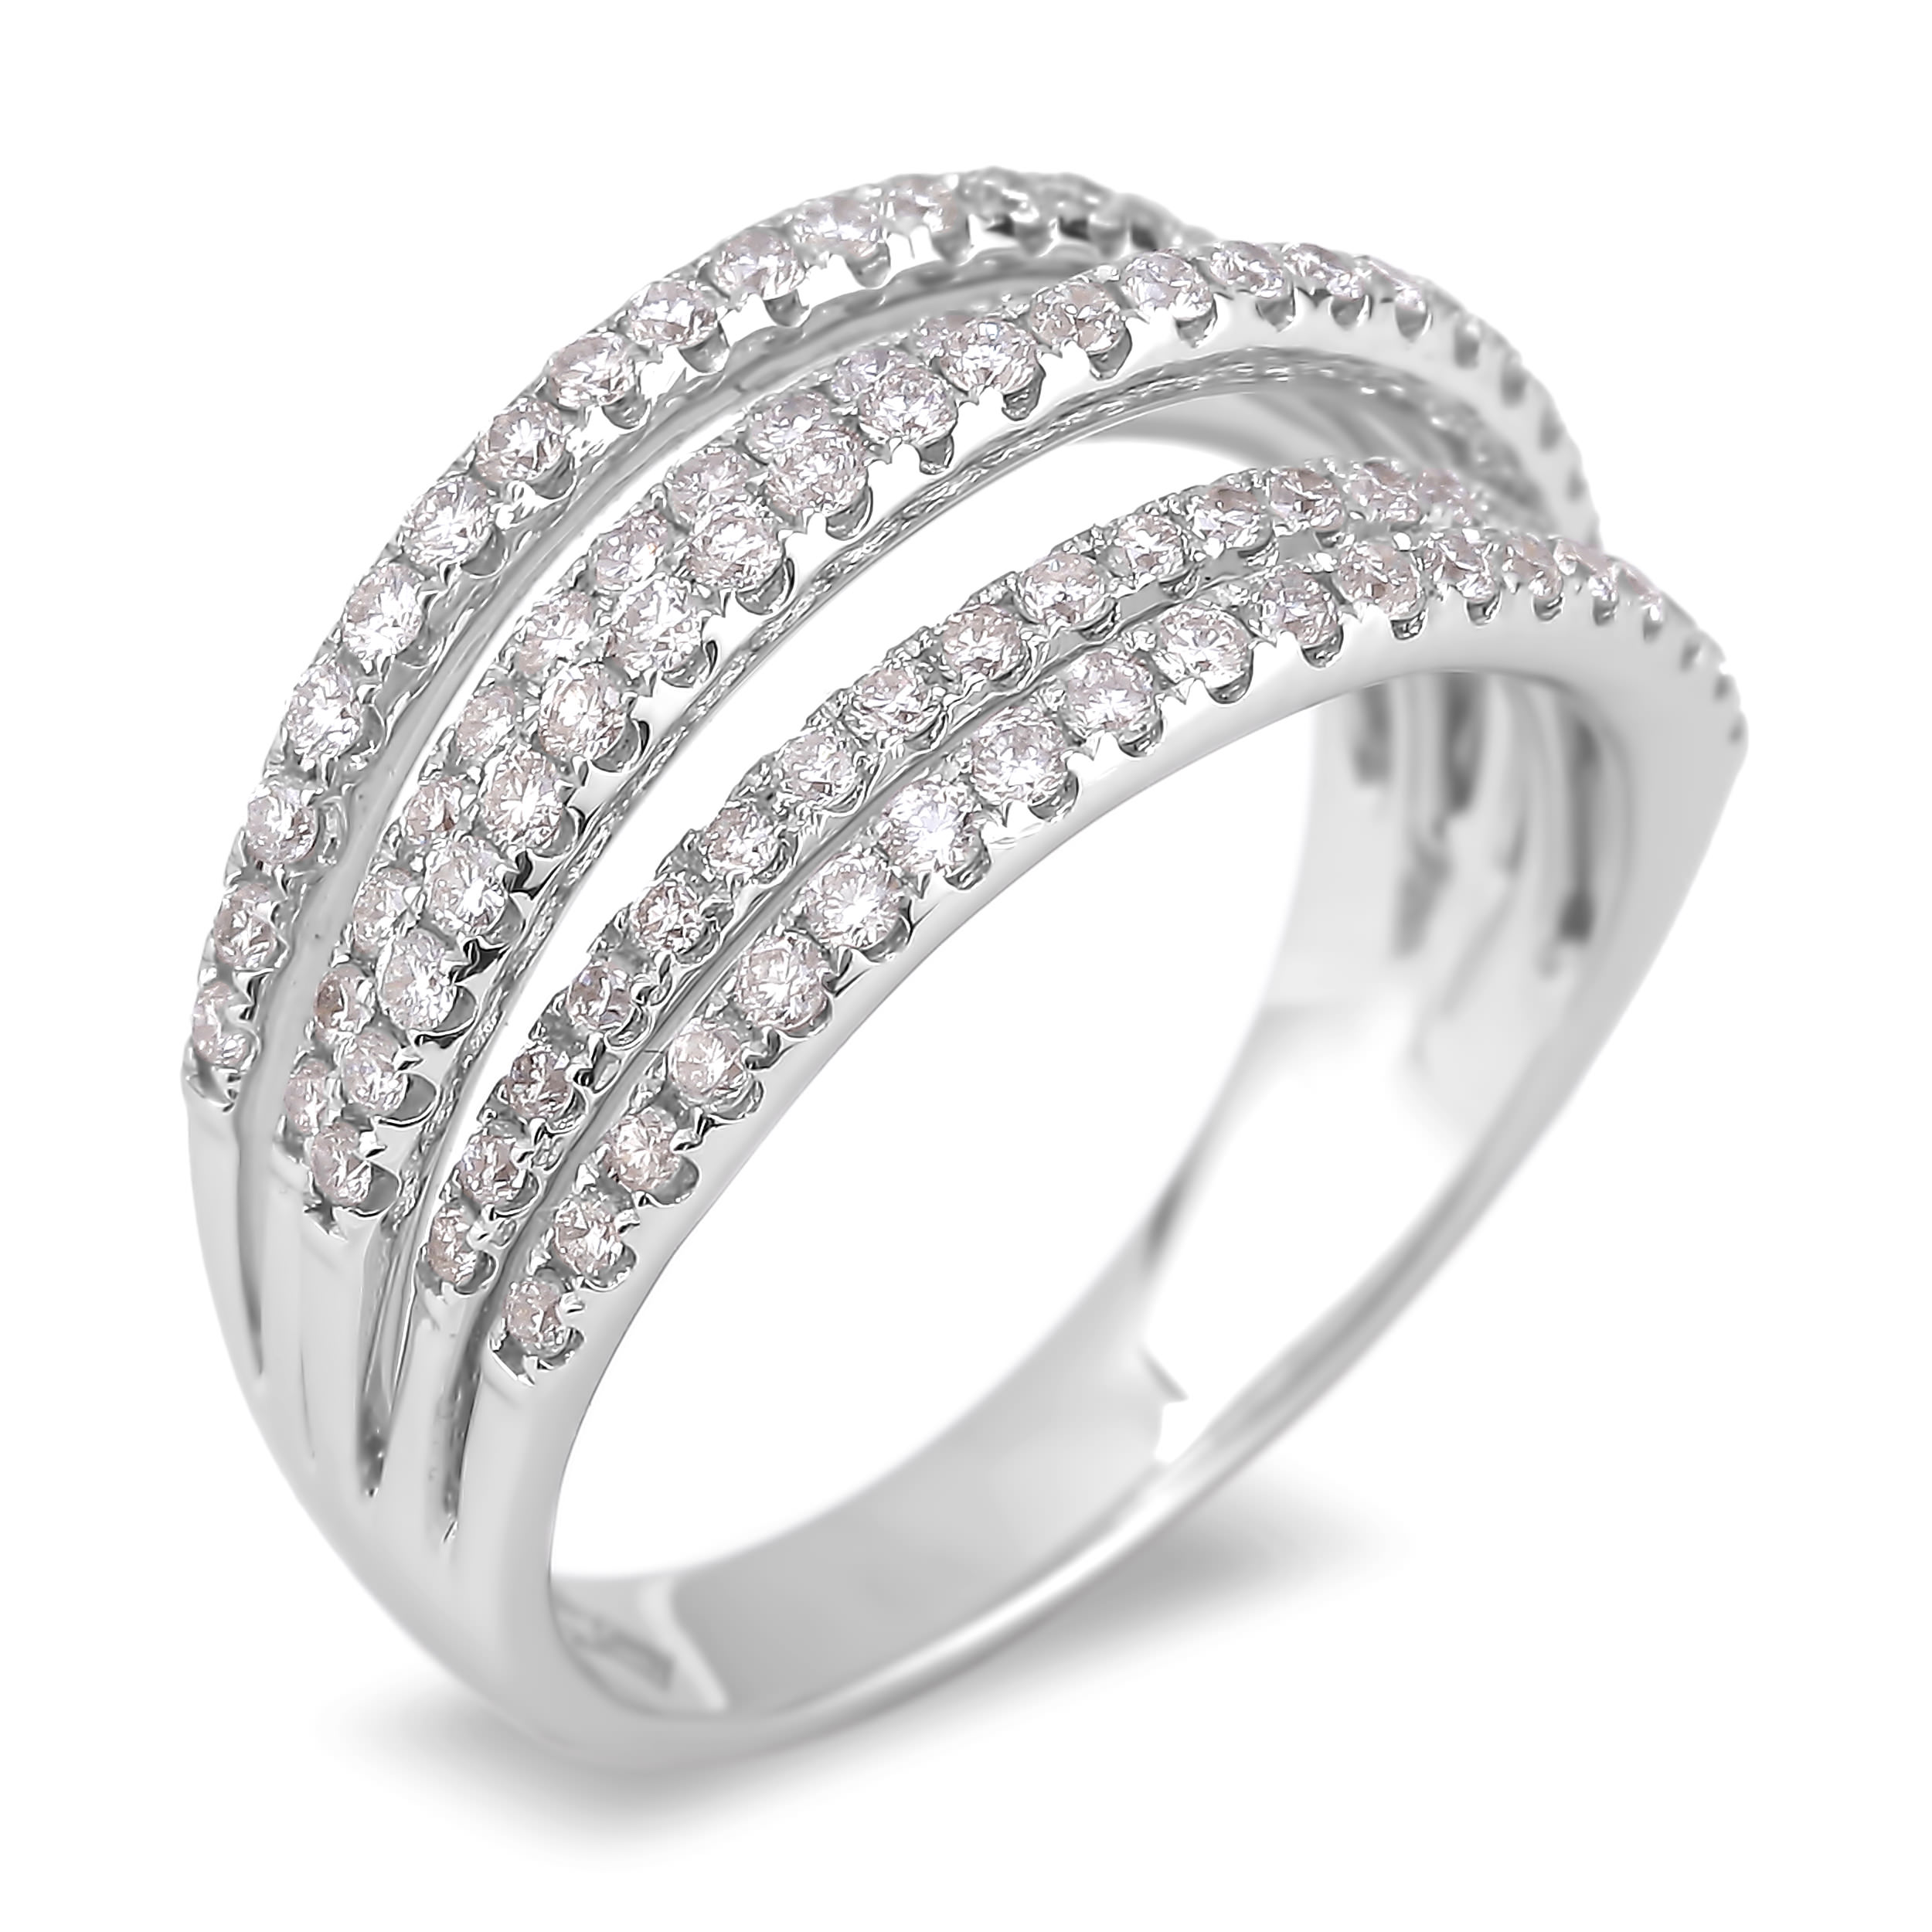 jewellery ctradyw products sophie london harley rings ring progressive diamond anniversary